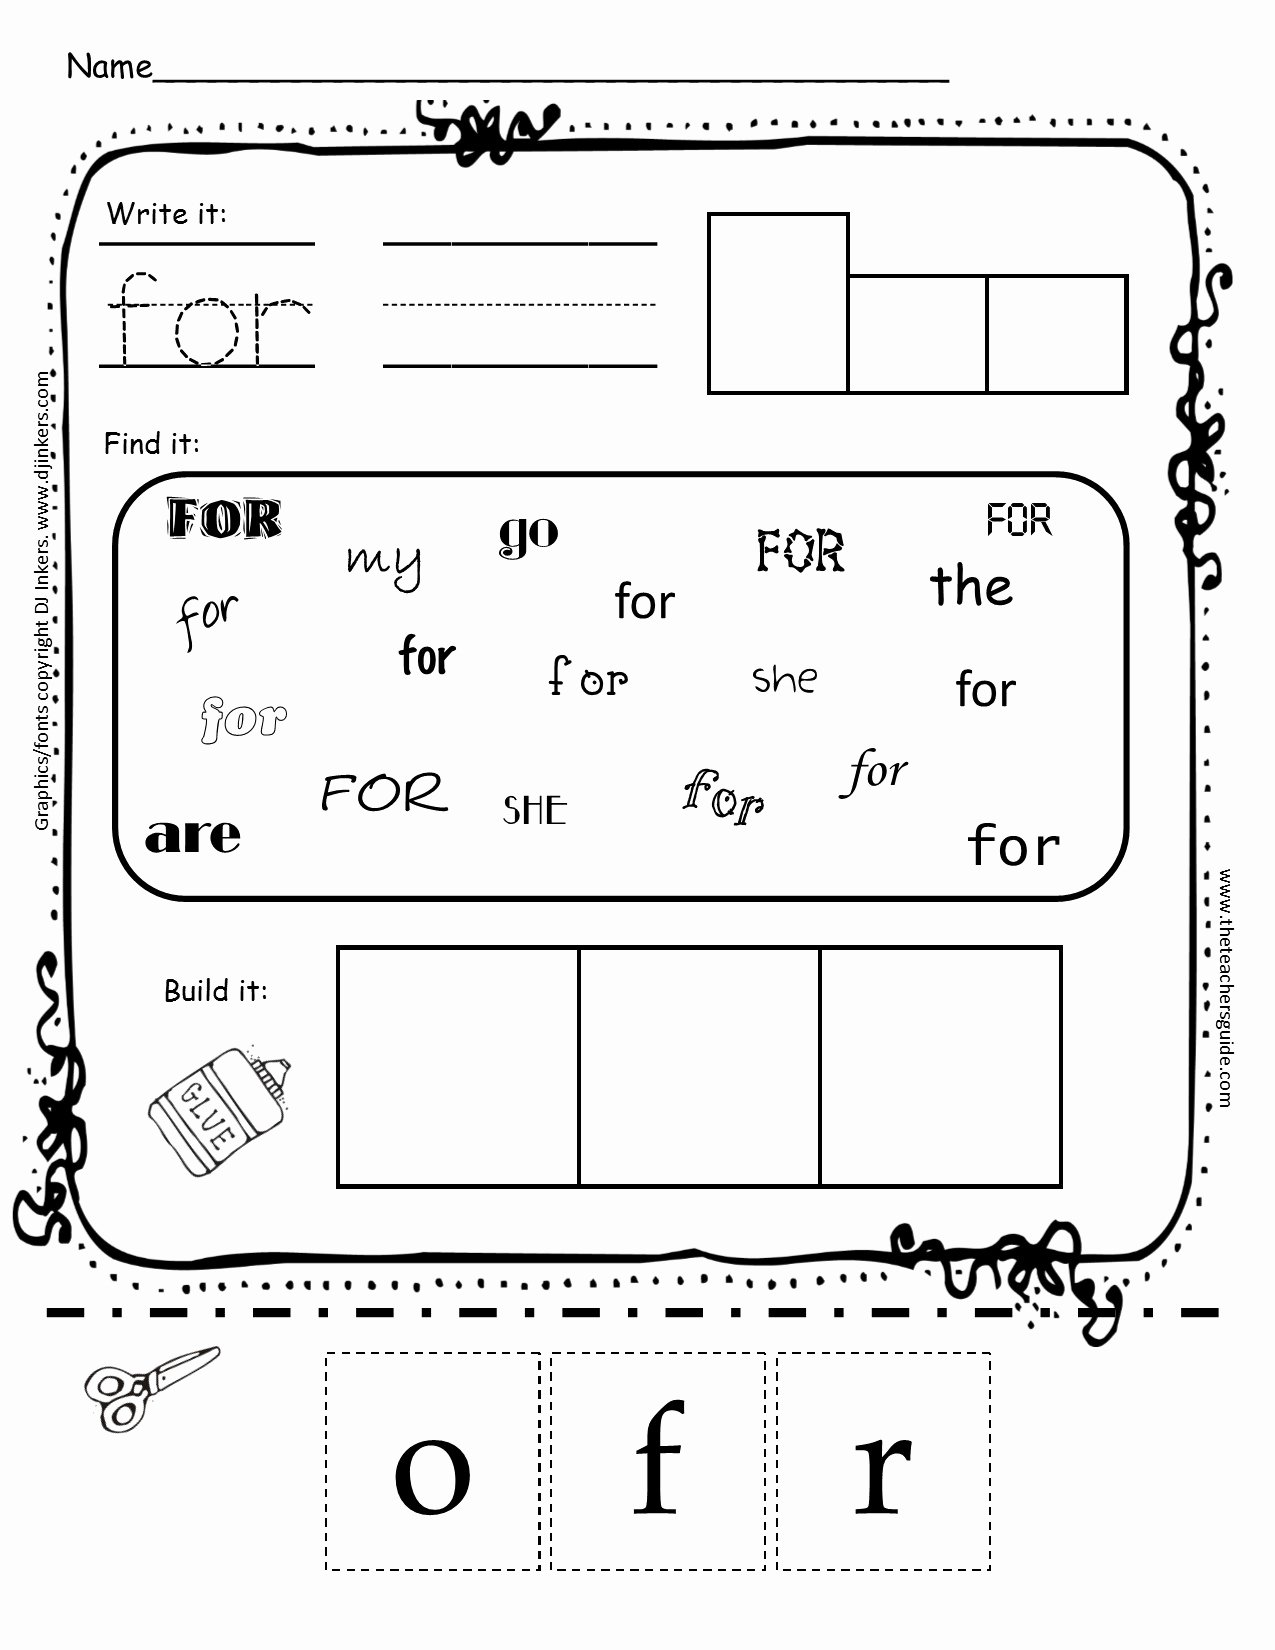 Sight Words Worksheet for Kindergarten Beautiful Kindergarten Sight Word Printouts From the Teacher S Guide